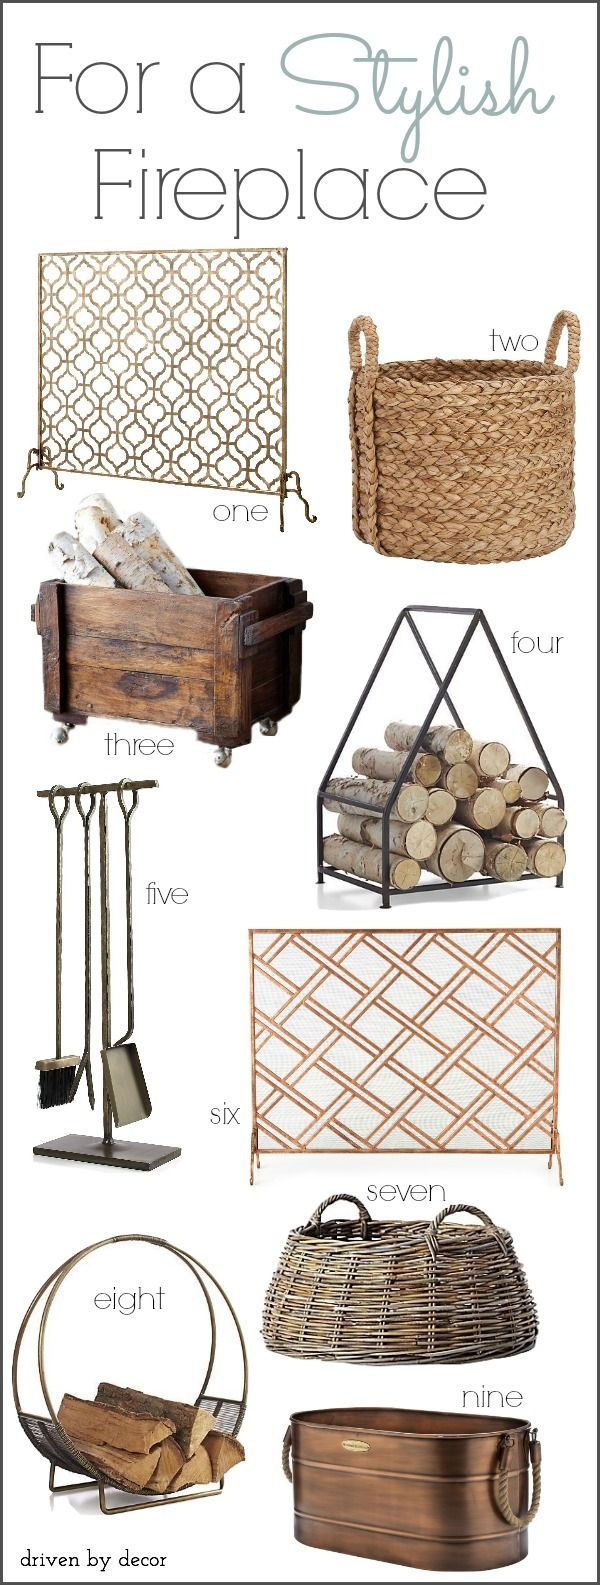 I have one of those wooden boxes  Accessories for a Stylish Fireplace Screens Best 25 accessories ideas on Pinterest